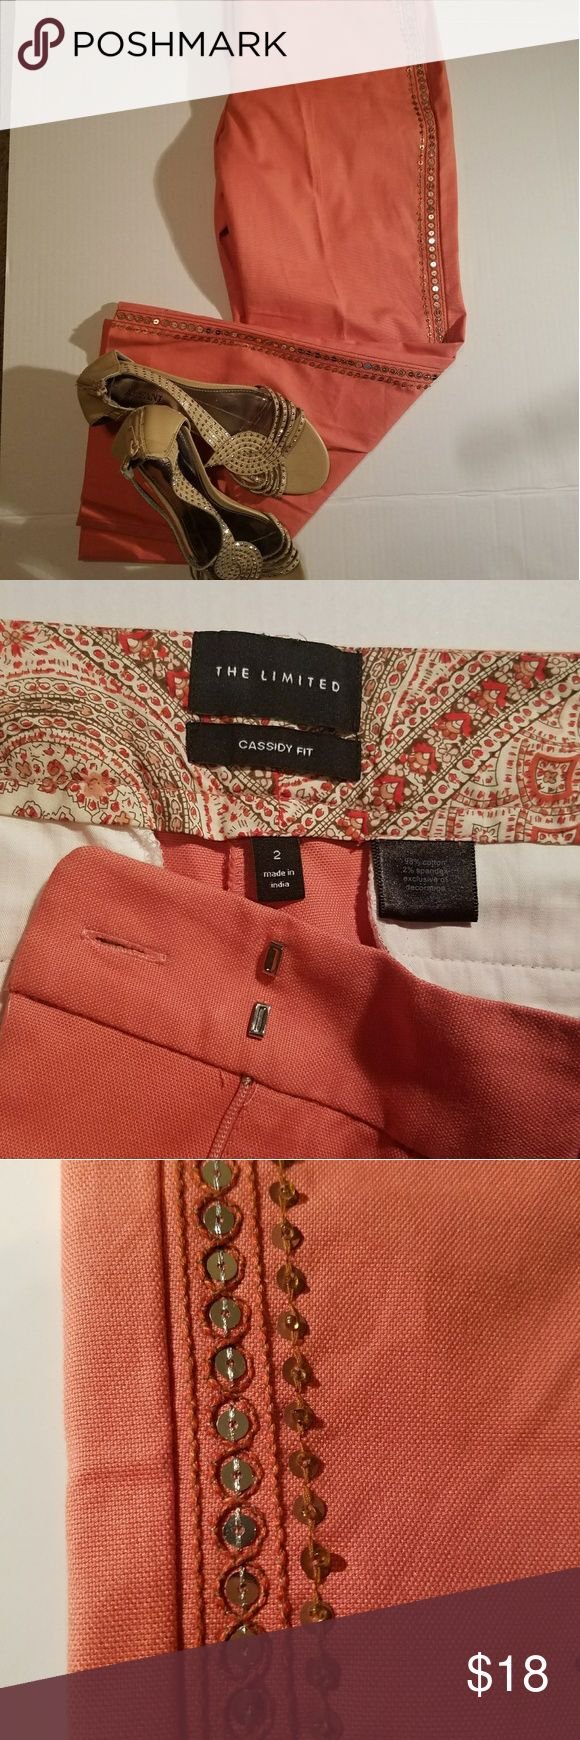 """The Limited capris cassidy fit in coral These like new  stunning coral Capri pants with embellished sides measure approx waist 15"""" length 32 materials 98% cotton 2% spandex dry clean  smoke free home The Limited Pants Capris"""